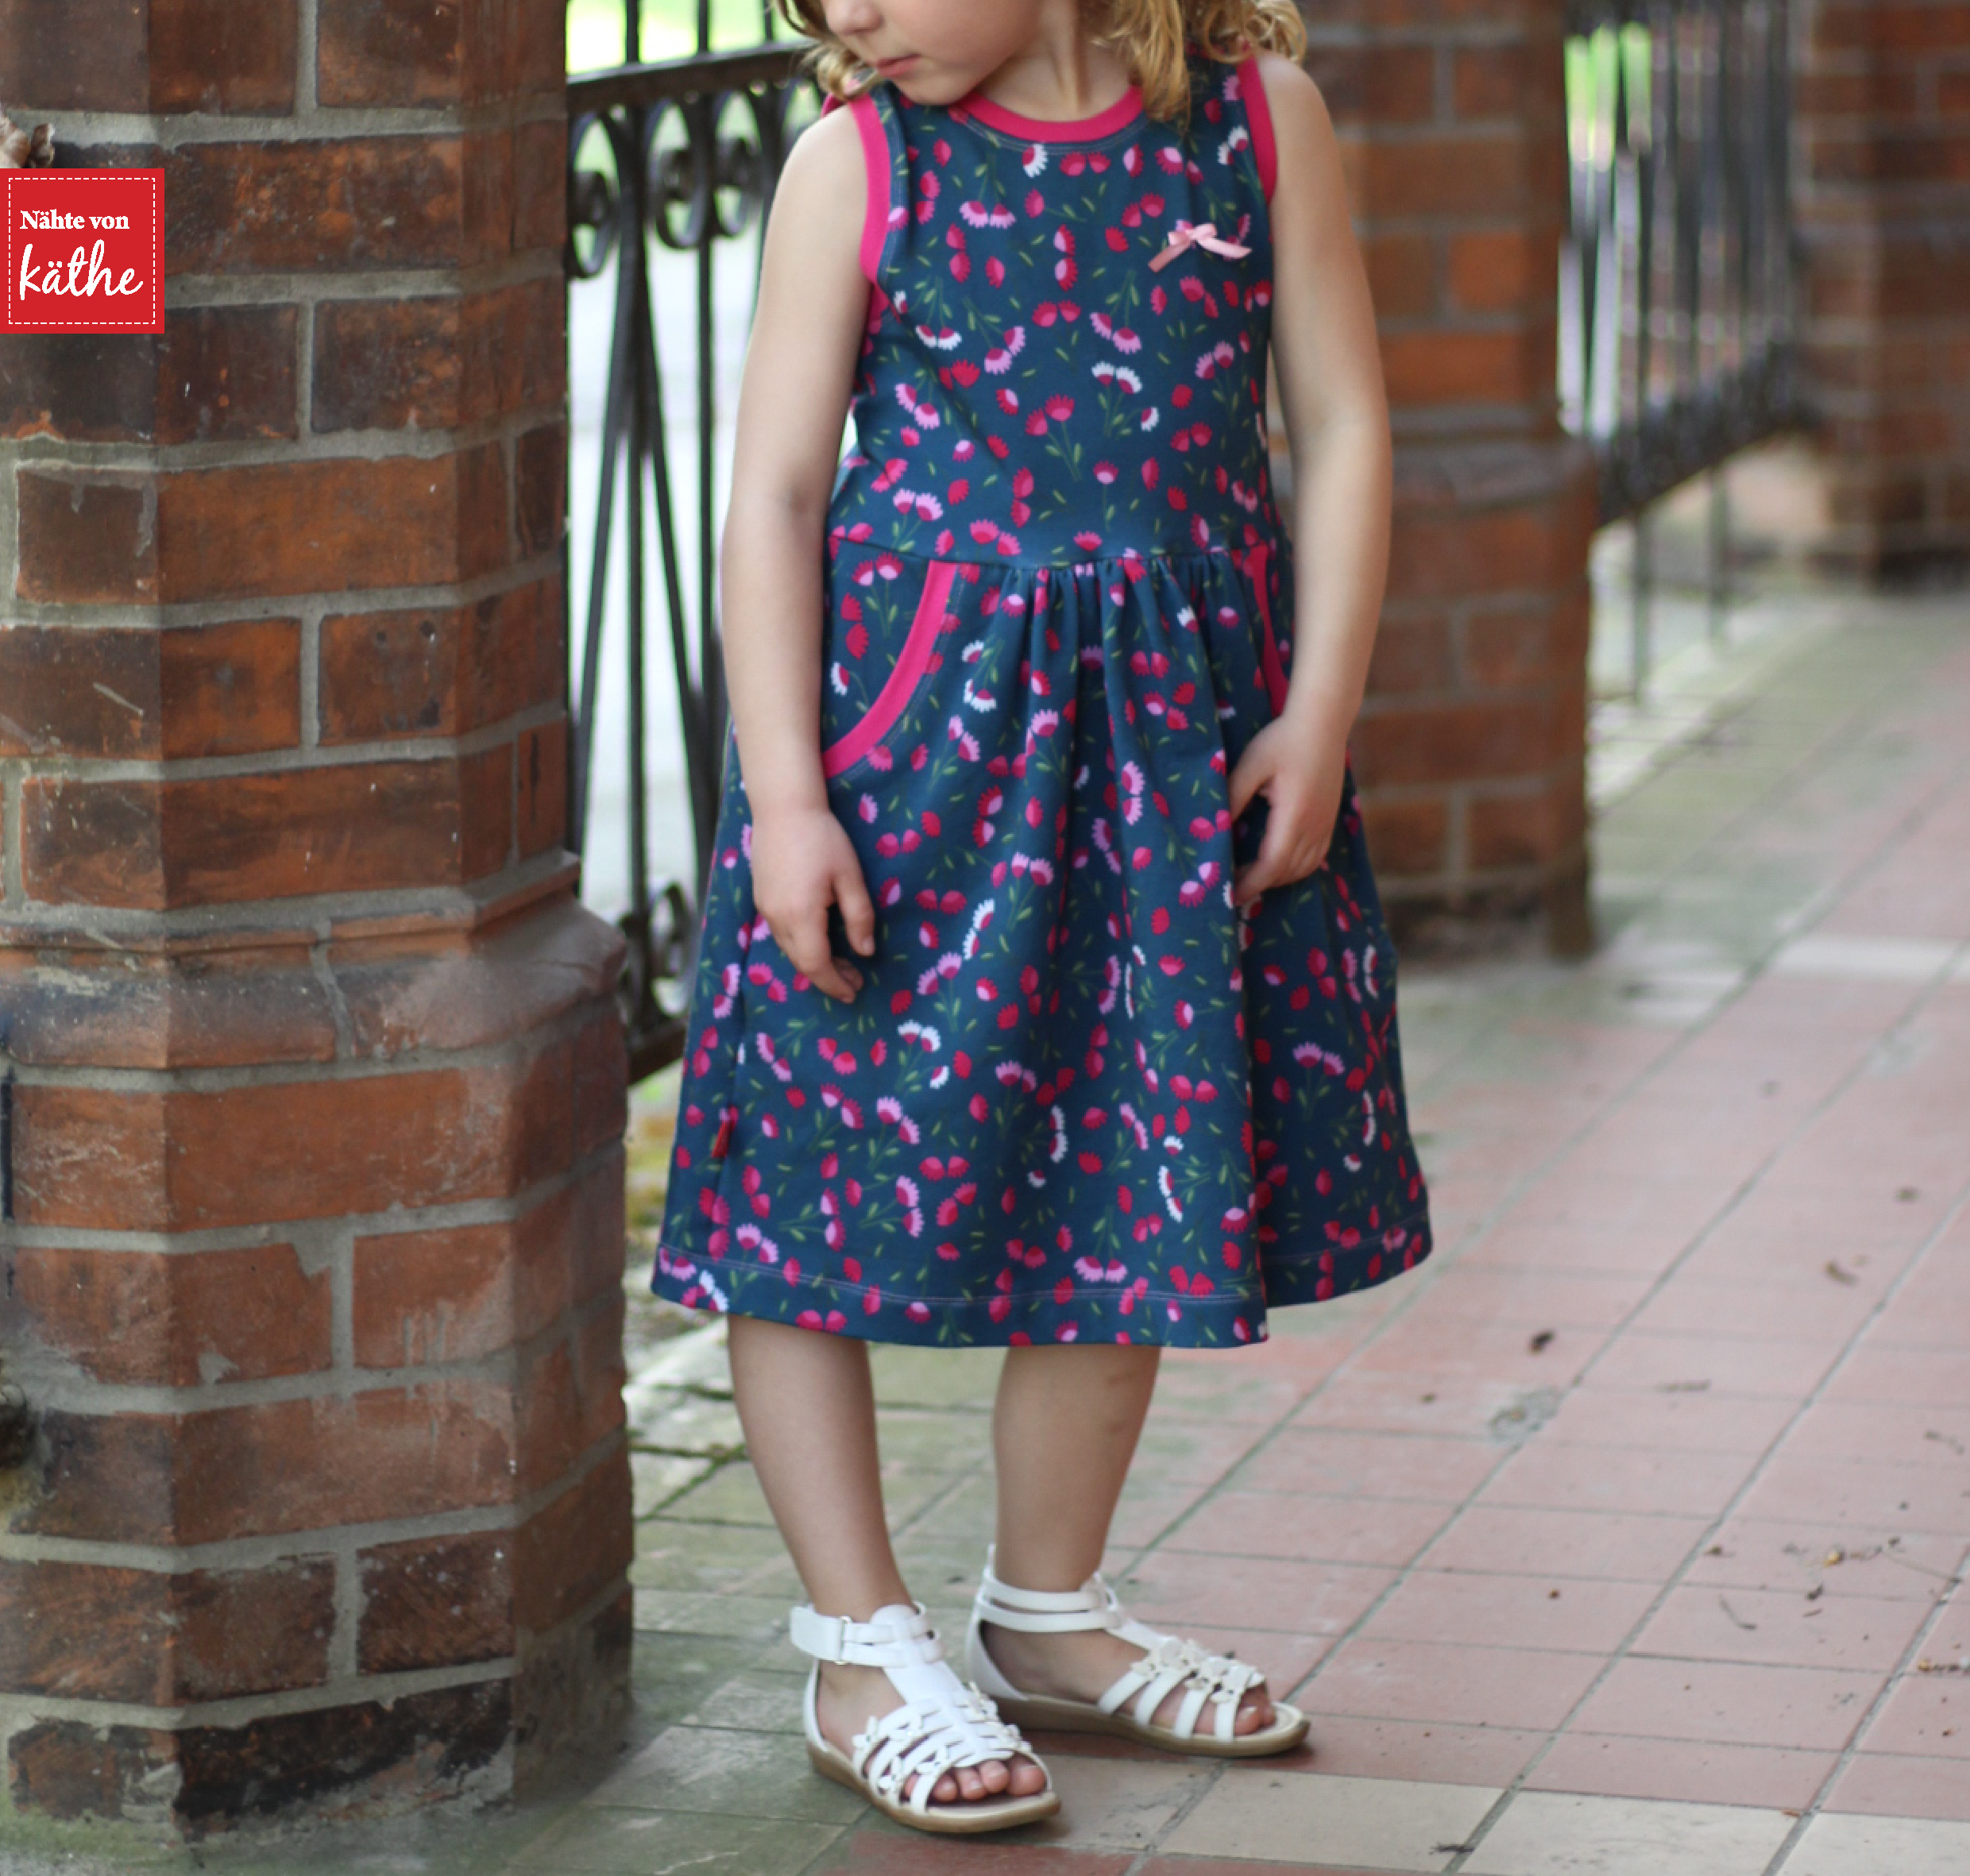 Soleil-Dress von baste + gather, erhältlich auf deutsch bei Näh-Connection, Sommersweat Mini Blooms aus der Melly & Mattes-Kollektion von Lila-Lotta